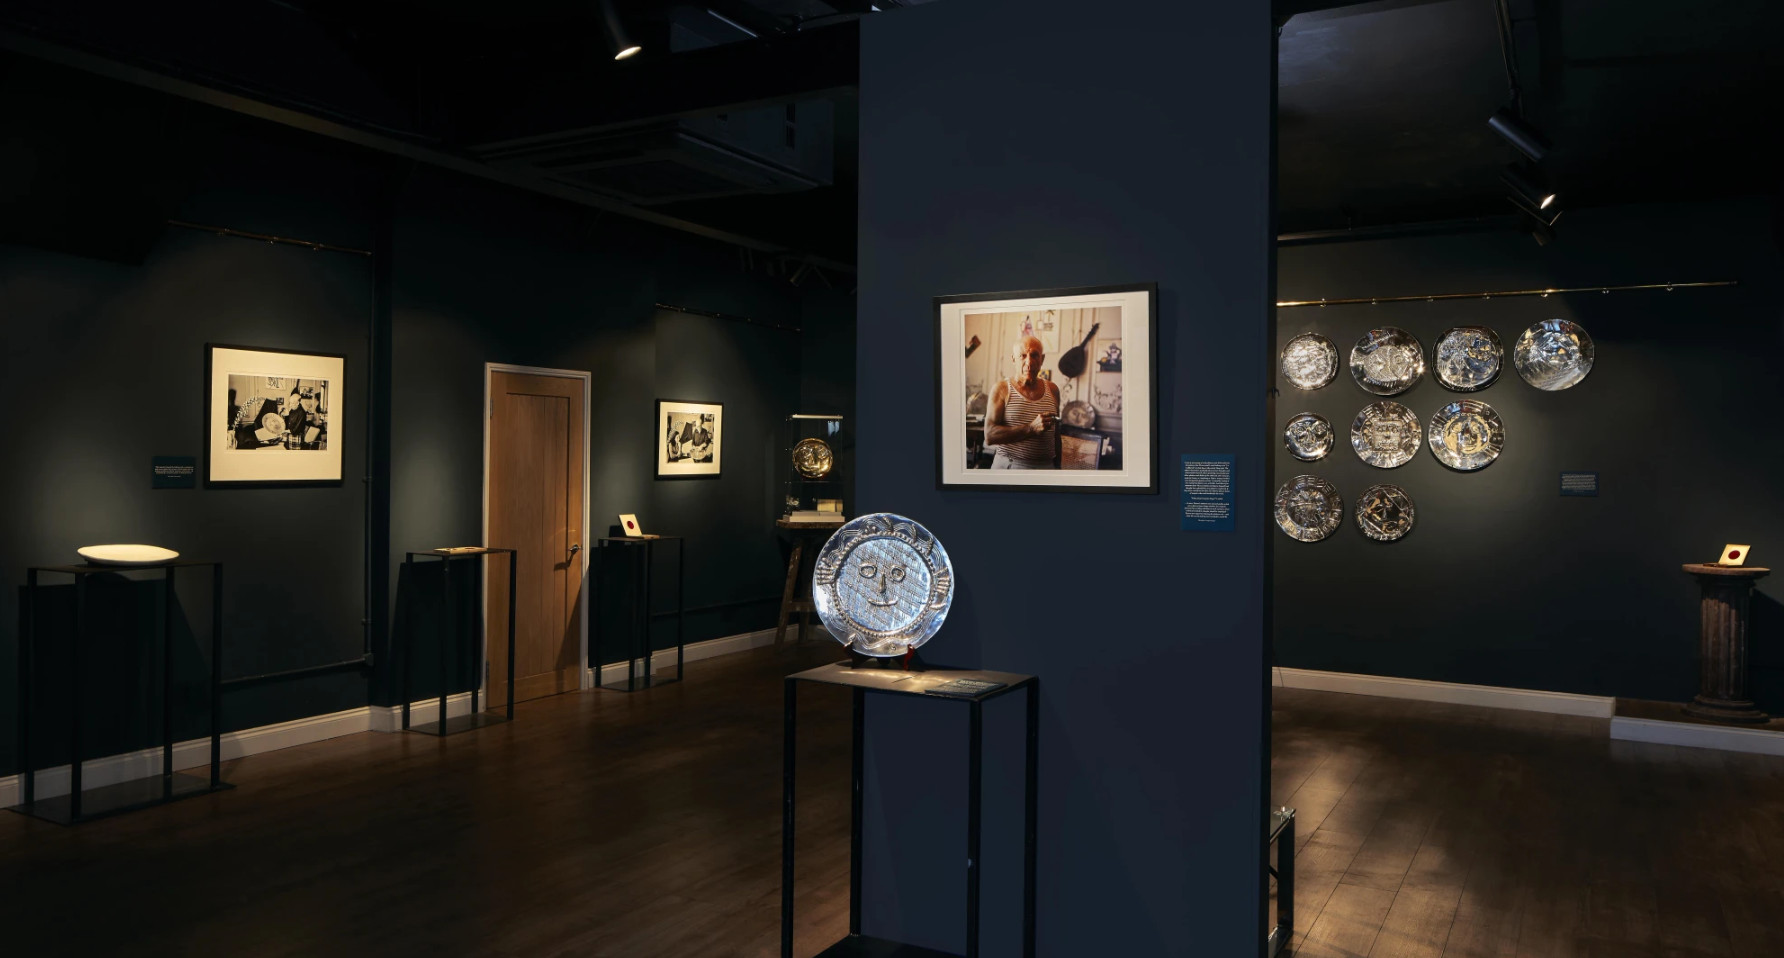 Masterpiece art re opens dec 2nd with exhibition of rare picasso works